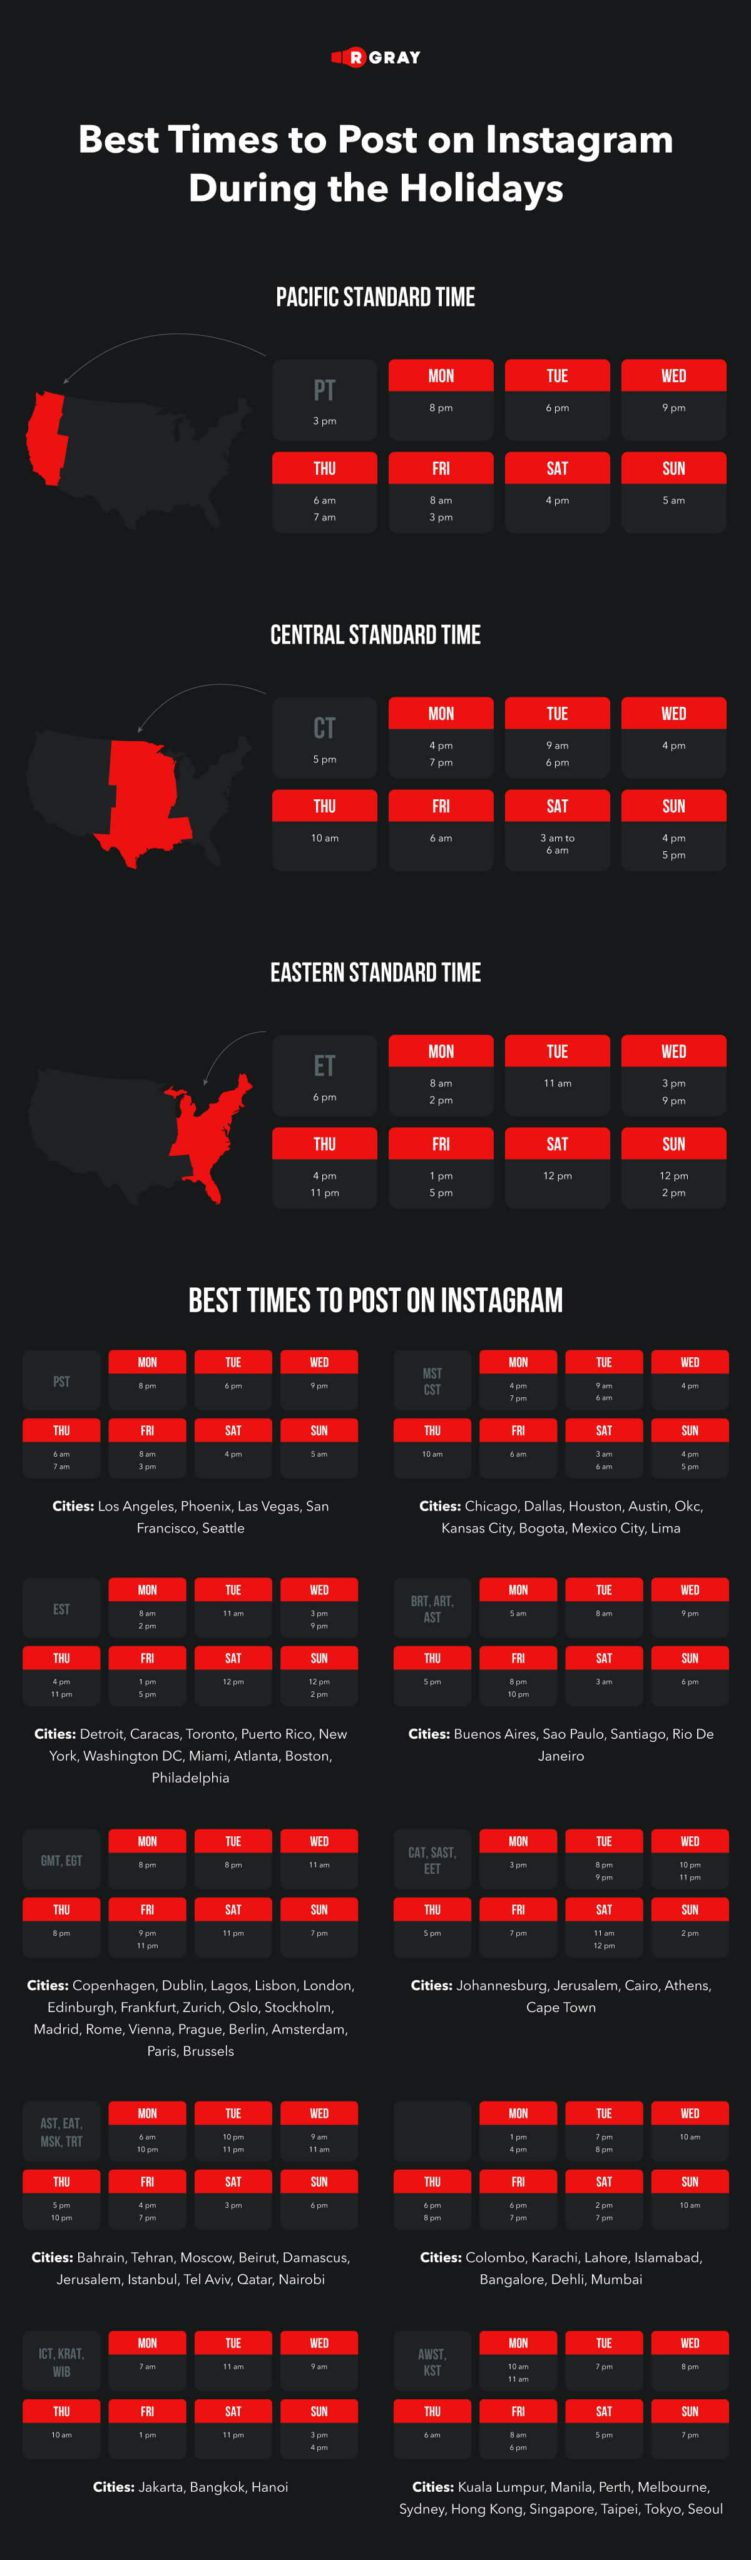 The Best Times to Post on Instagram During the Holidays [Infographic]